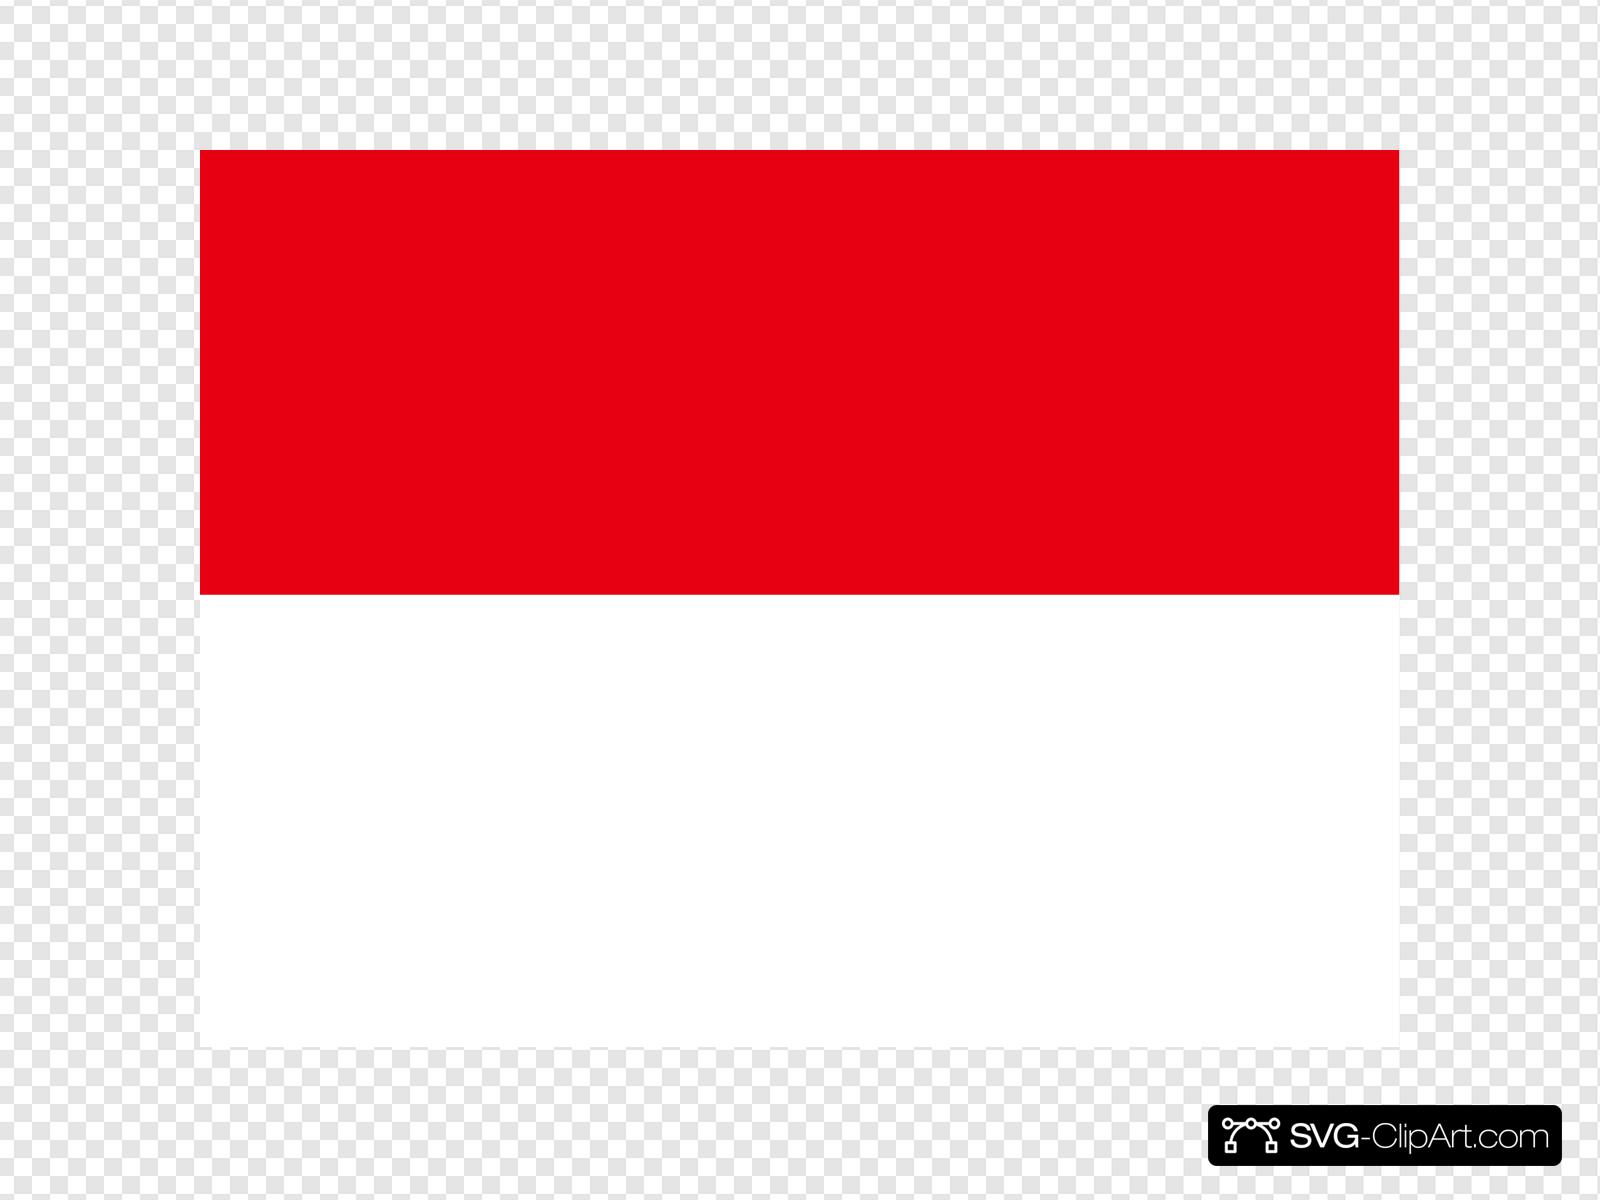 flag of indonesia svg vector flag of indonesia clip art svg clipart flag of indonesia svg vector flag of